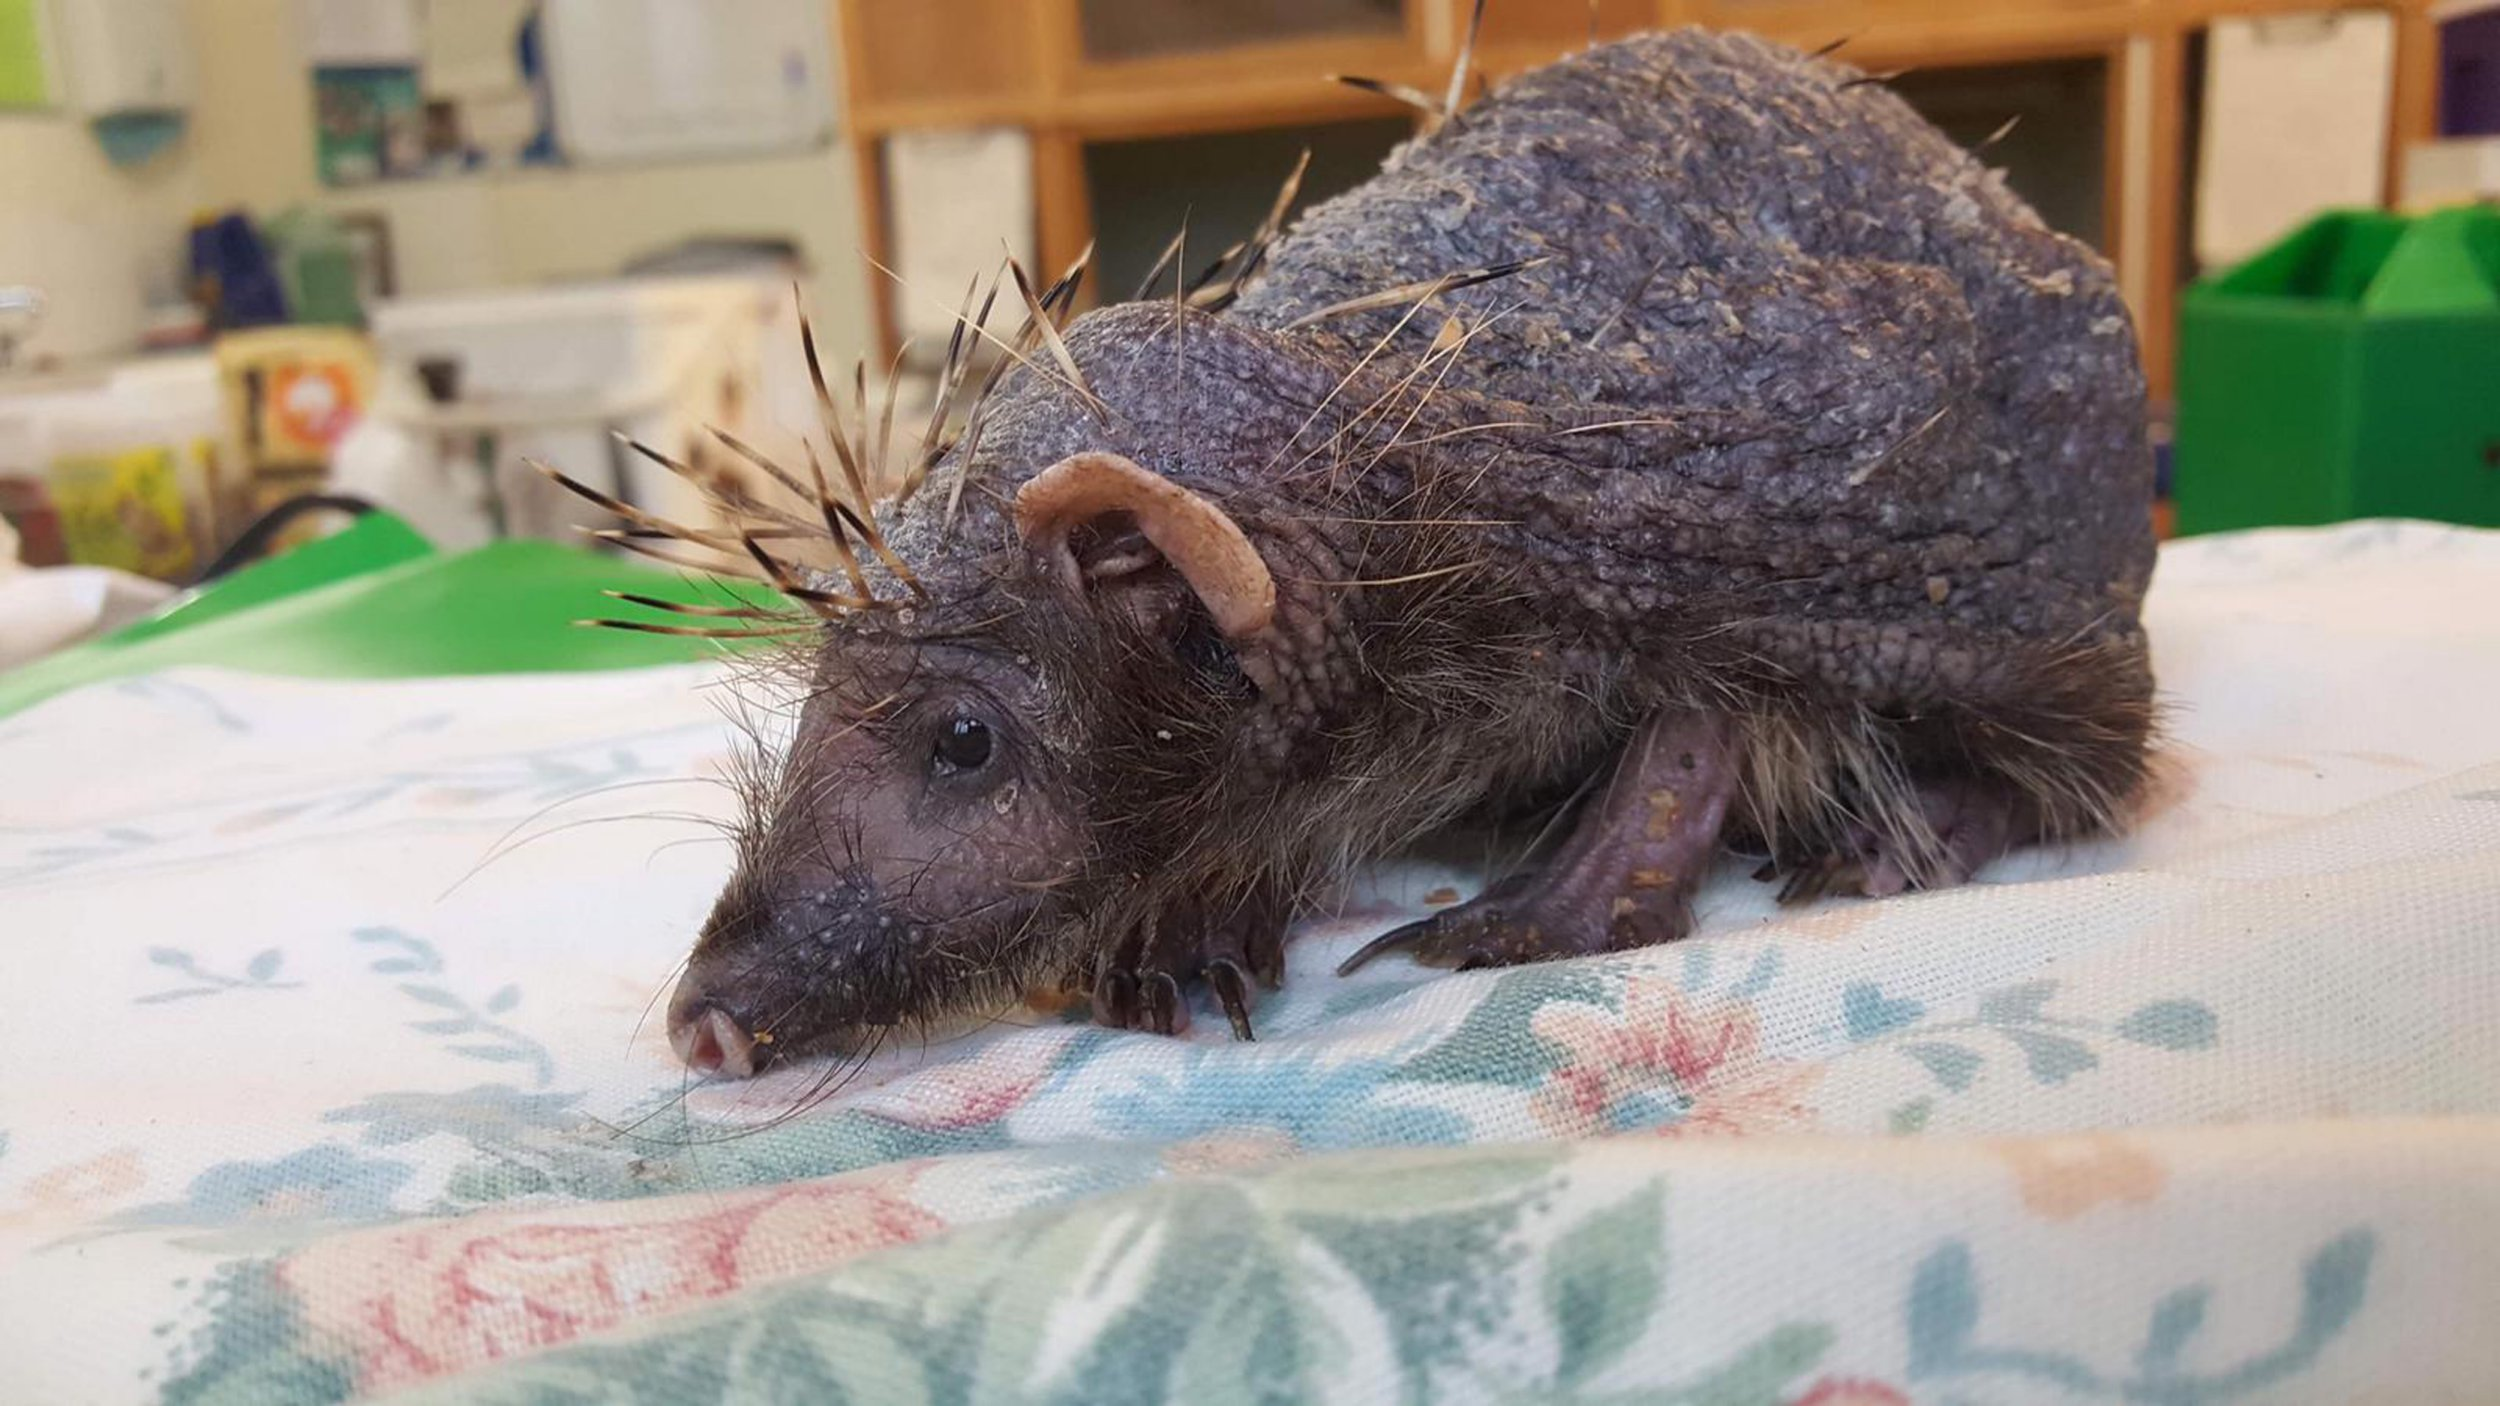 """Meet Bear - the adorable bald hedgehog who now receives daily massages to help him regrow his spines. Bear was rescued by a concerned member of the public who took him to Cuan Wildlife Rescue Centre in Much Wenlock, Shropshire. Staff quickly determined the unusual looking creature was a bald hedgehog who had lost his spines. They believe he woke up early from hibernation with an ear mite infection, which caused his needles to fall out due to stress. Luckily for Bear, the hapless hedgehog is now receiving around the clock care including daily massages with an ointment made from Aloe Vera. It is hoped his treatments will encourage blood circulation in the skin to promote growth in the spines. They also help to relax Bear and relieve his stress. Fran Hill, the manager of the rescue center, said: """" It s likely he went into hibernation with a small infestation of ear mites, irritating little blighters. During his slumber they had covered him, causing massive irritation to his skin. Along with the dehydration and massive weight loss, while sleeping, the mites had taken hold. They were running over him on admission. He was given a bath to soothe his skin and wash away the mites. Then a good skin massage with aloe gel. He will have to have worming treatments which will help with weight gain too. His spines should grow back but it will take time. I m hoping in around two months he will be looking much better and will be on the way to being released. This is the best gift we could give him. Even though he is quite weak, he is still quite huffy! If you want to pick him up, he will take one look at you and curl so tight! A problem when one of his meds is oral! He s happy for us to watch him and almost pose but no touching."""". 23 Jan 2019 Pictured: Bear the bald hedgehog. Photo credit: Cuan Wildlife / MEGA TheMegaAgency.com +1 888 505 6342"""